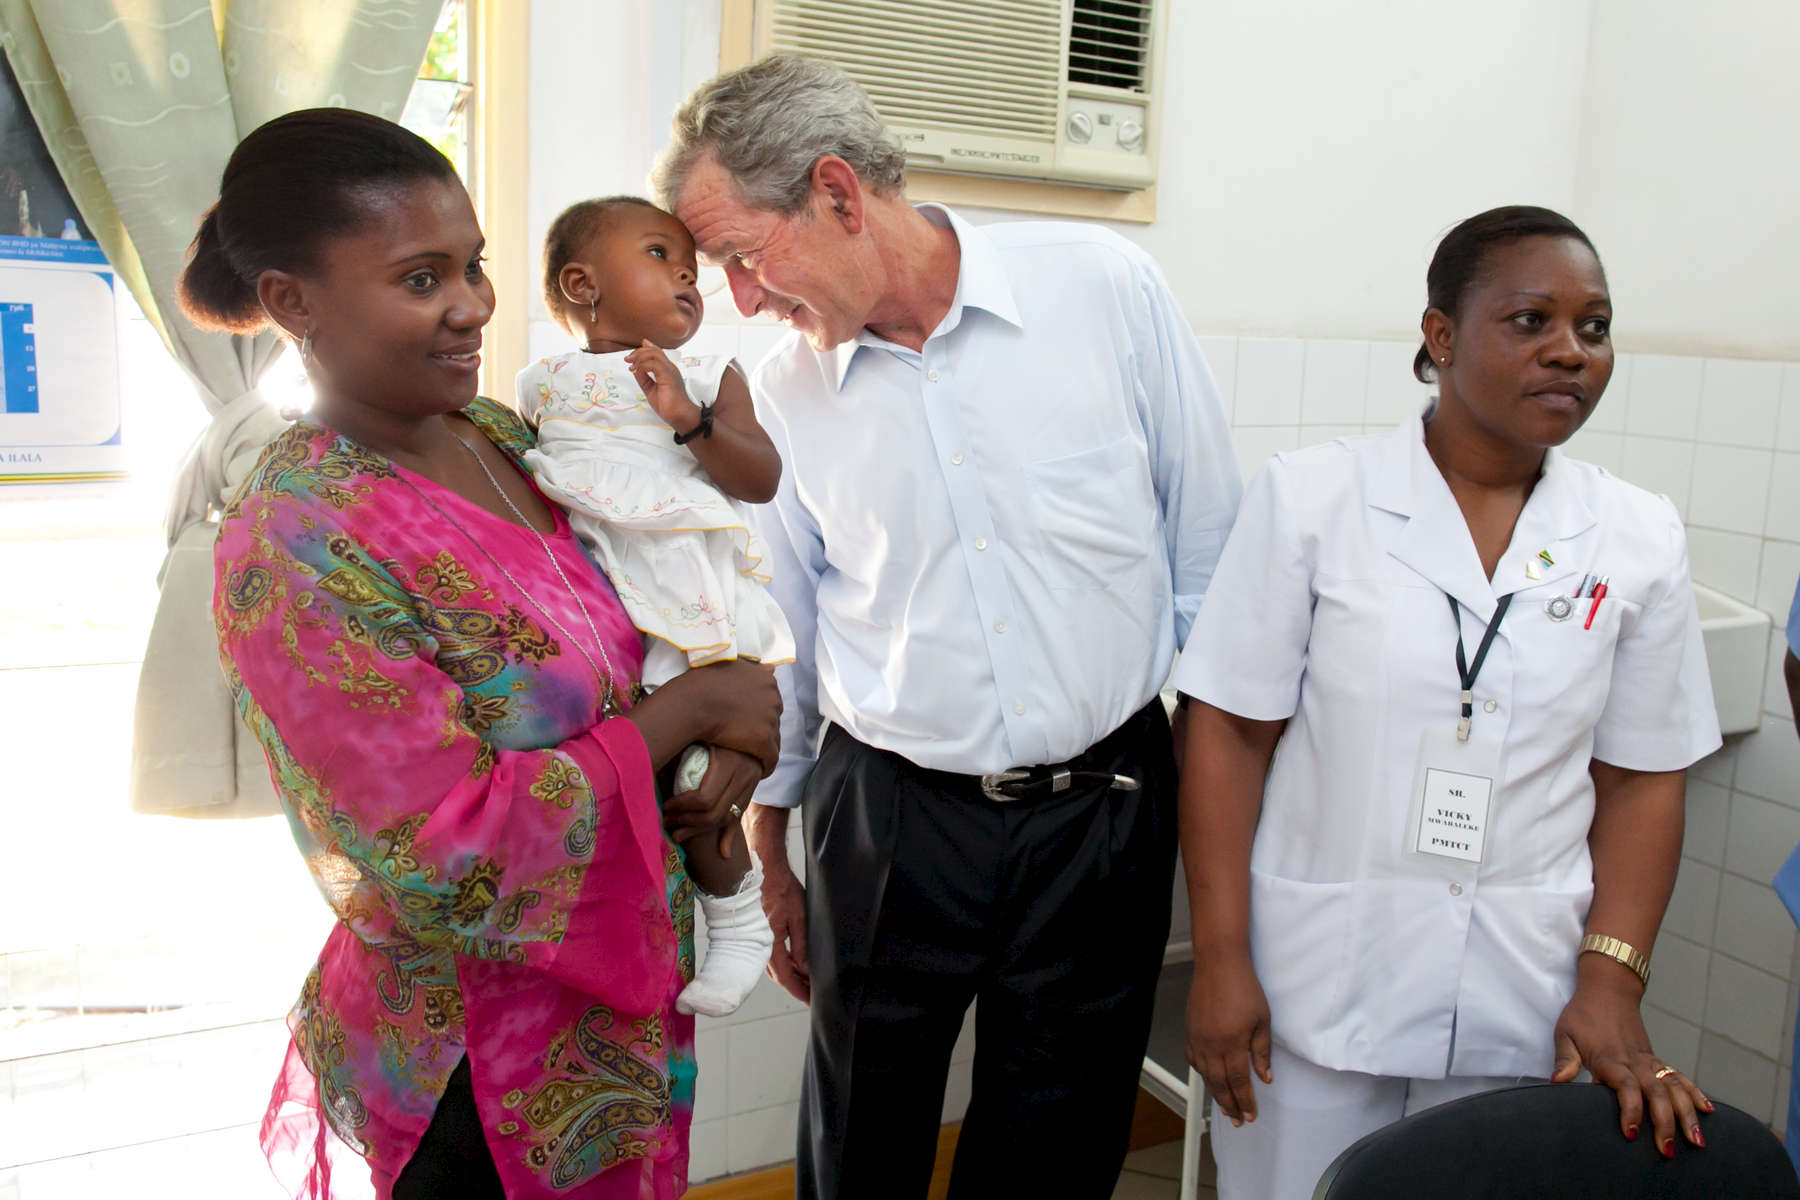 The trip of President and Mrs. Bush to Dar es Salaam, Tanzania on December 1, 2011.